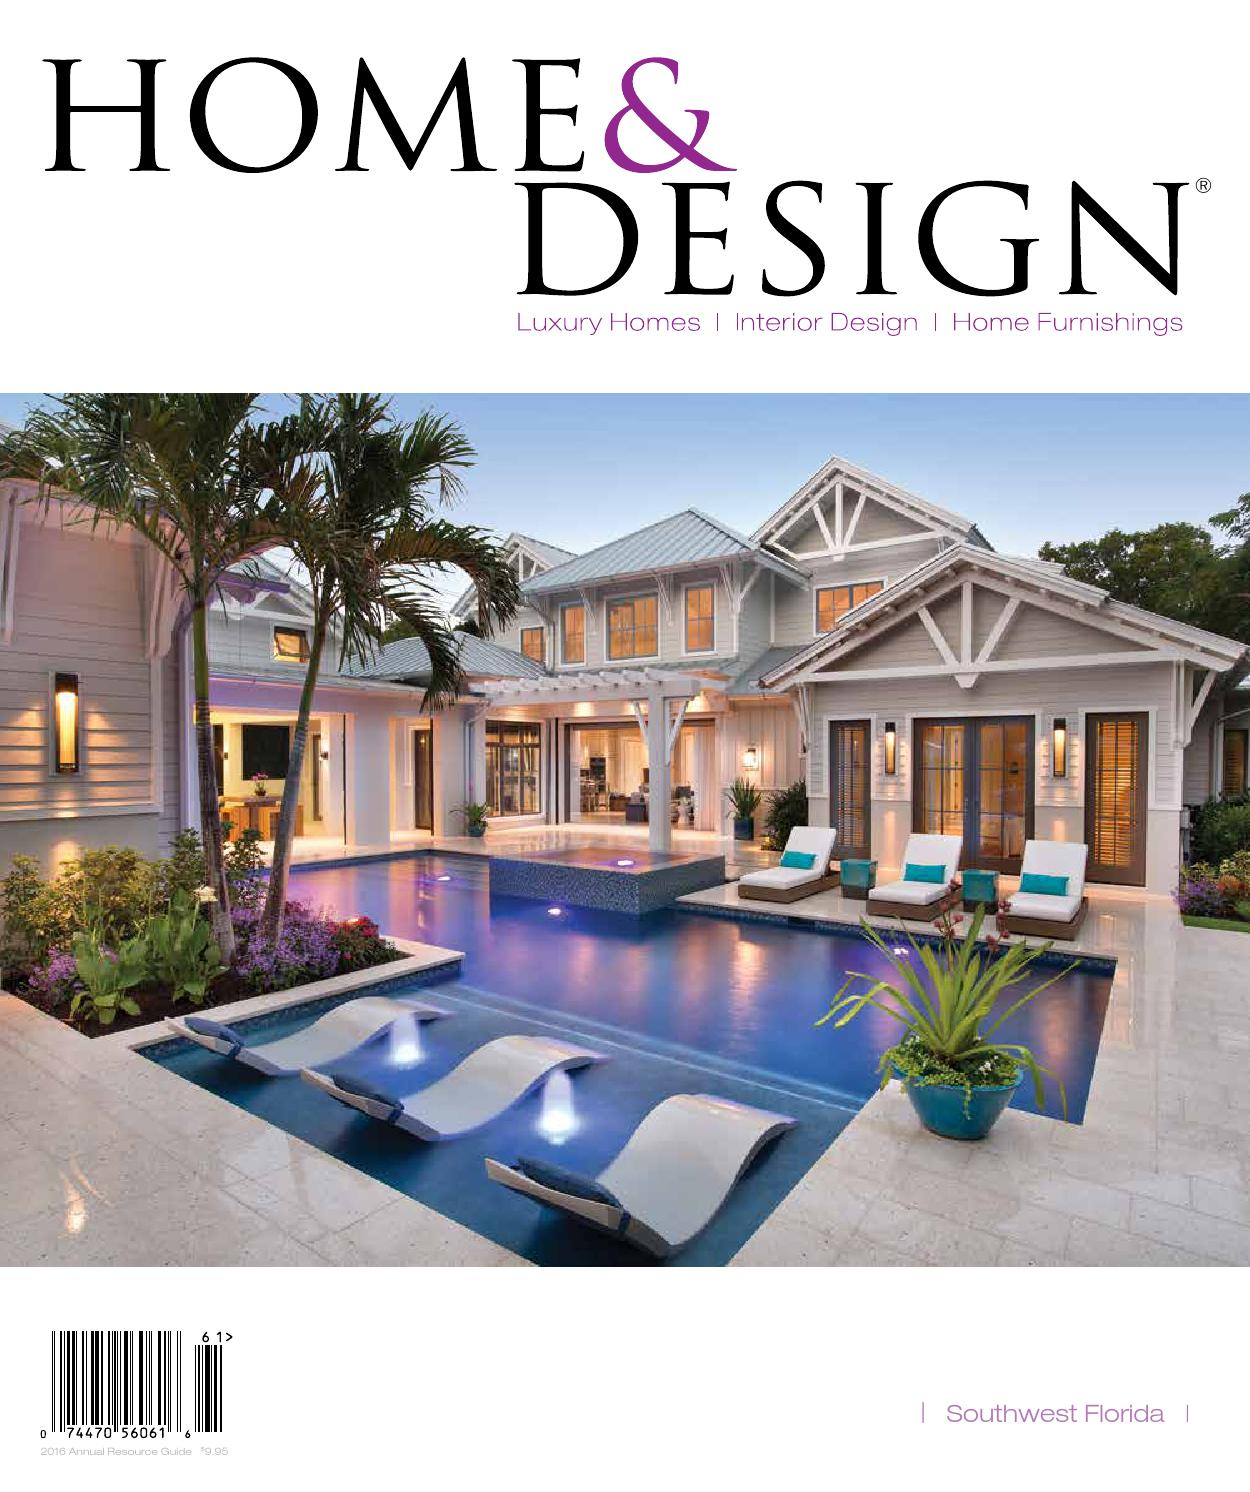 Home & Design Magazine | Annual Resource Guide 2016 ... Naples Florida Model Home Designs on salem oregon home designs, new jersey home designs, key west florida home designs, seaside florida home designs, boise idaho home designs, florida waterfront home designs, new orleans home designs, palm beach home designs, cape coral home designs,